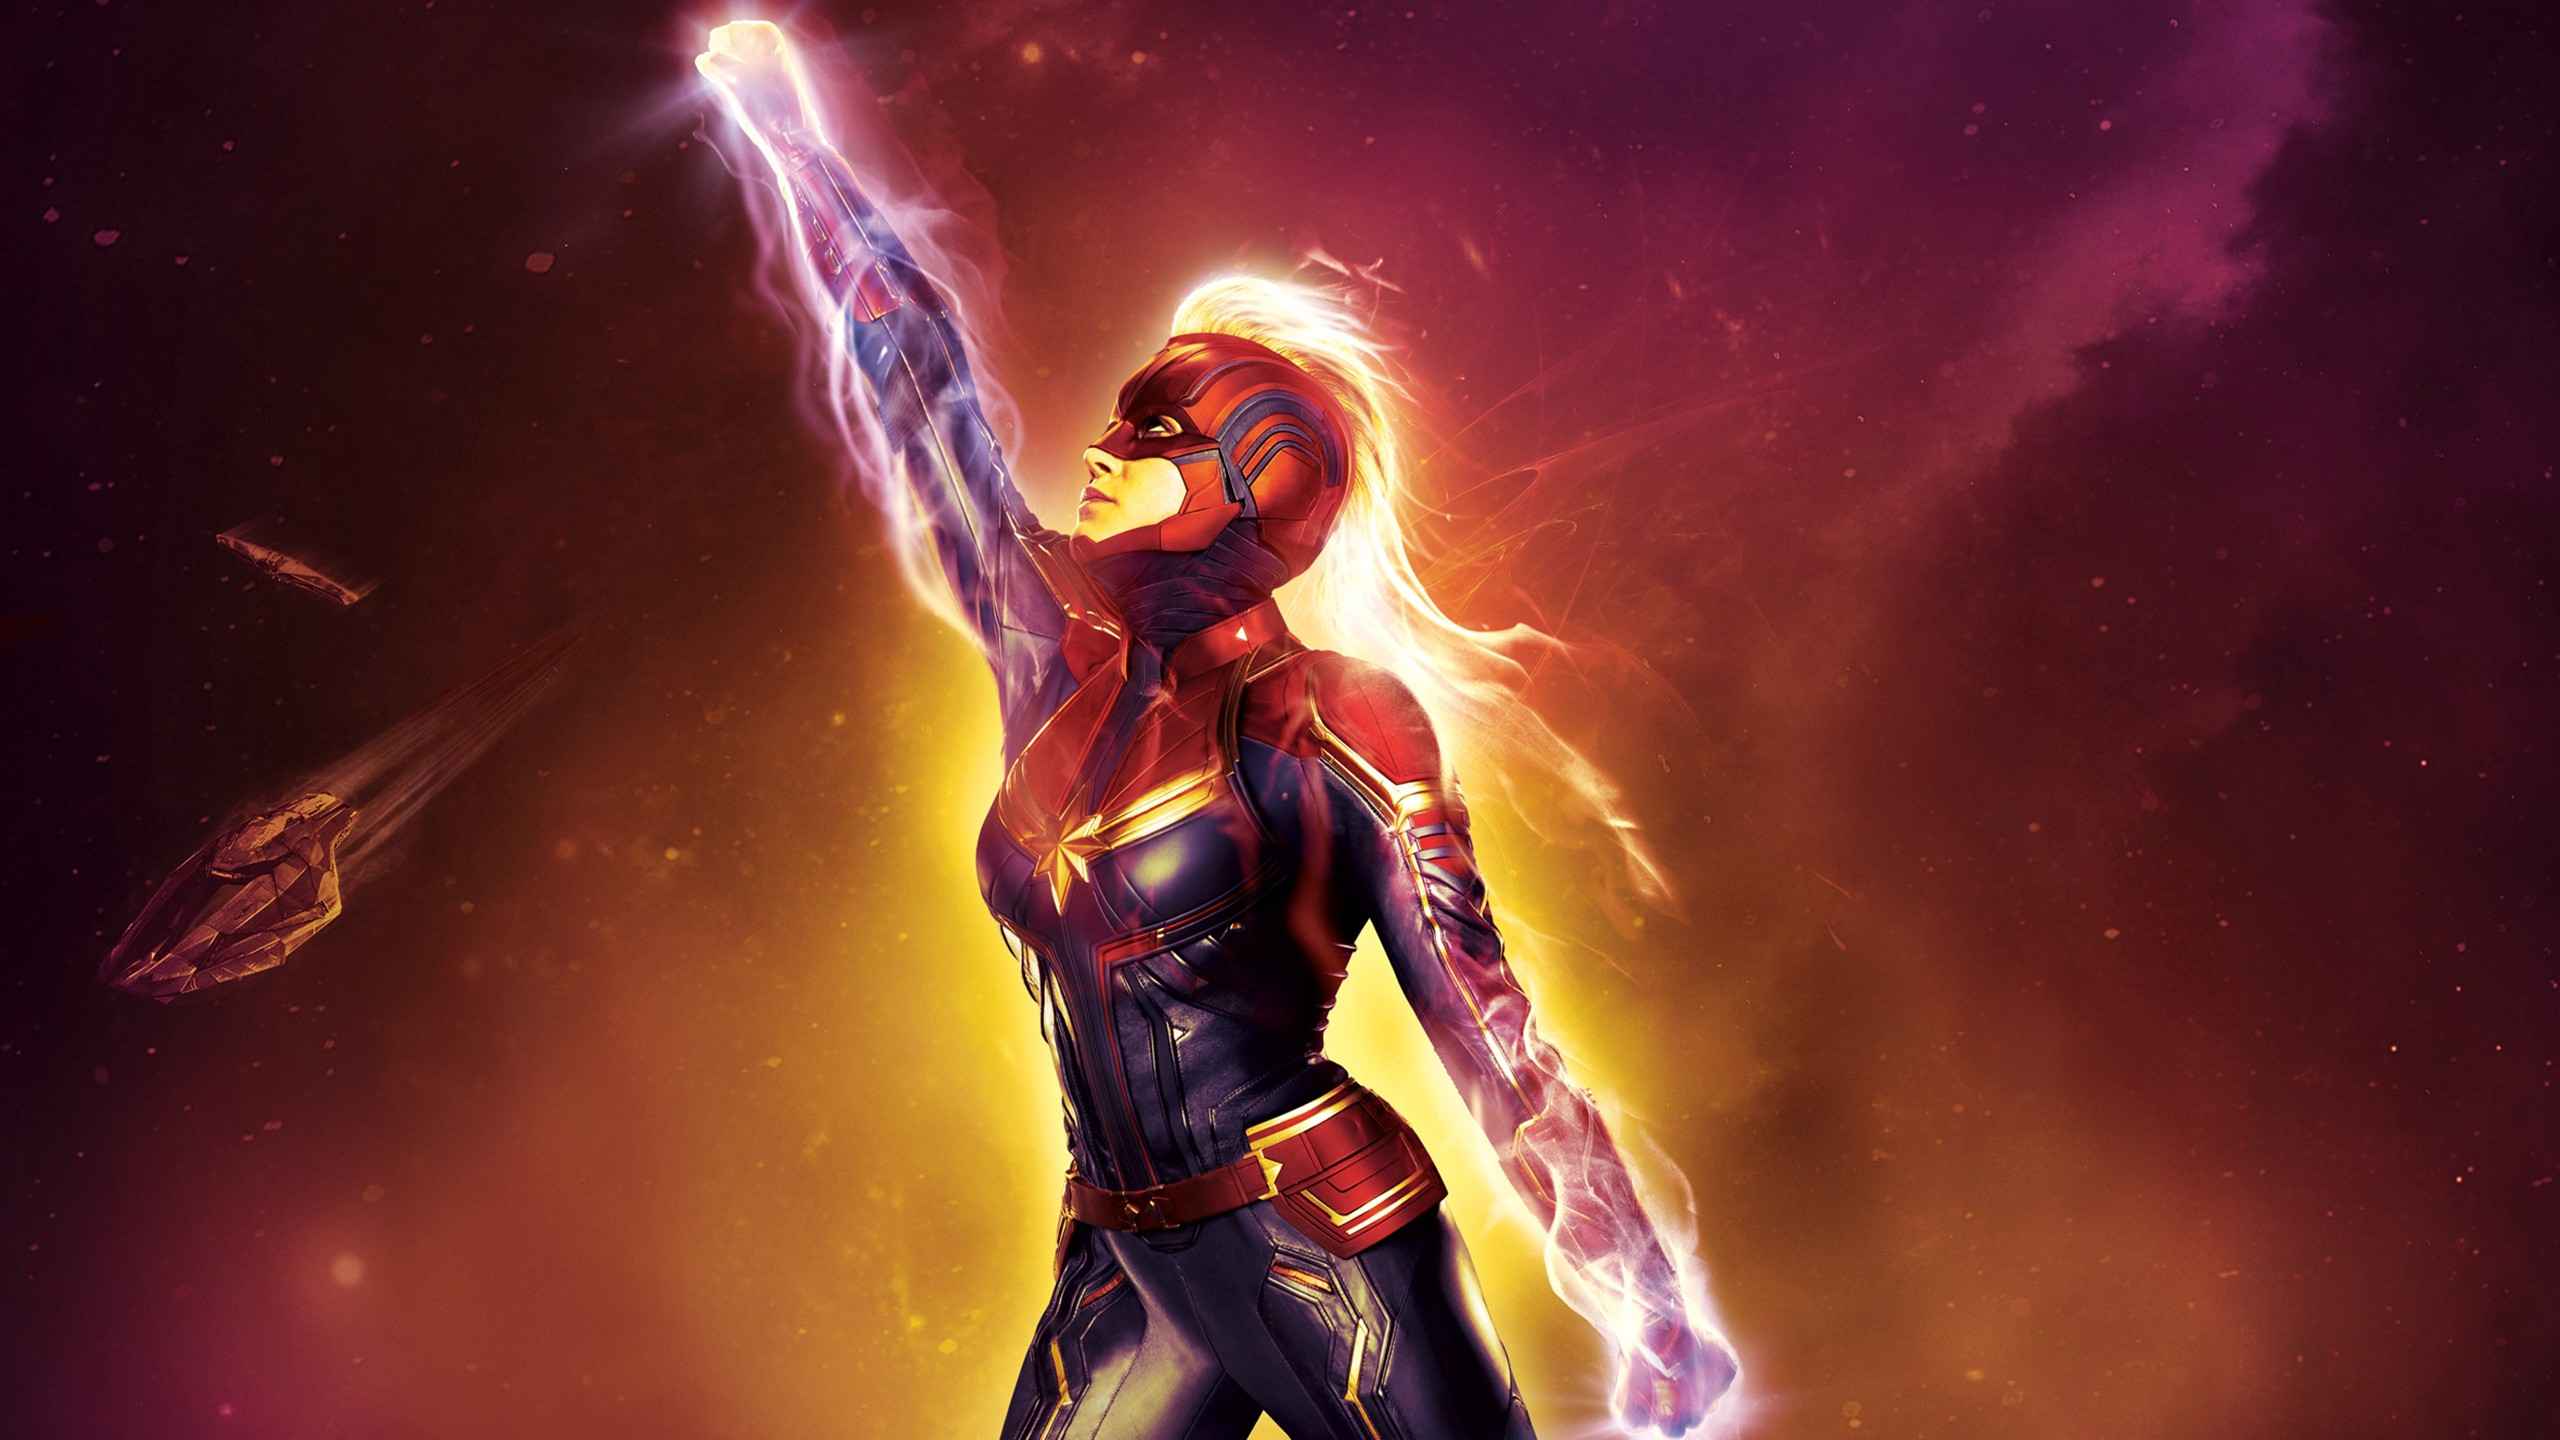 3d Animation Wallpaper Android Captain Marvel Wallpapers Hd Wallpapers Id 27771